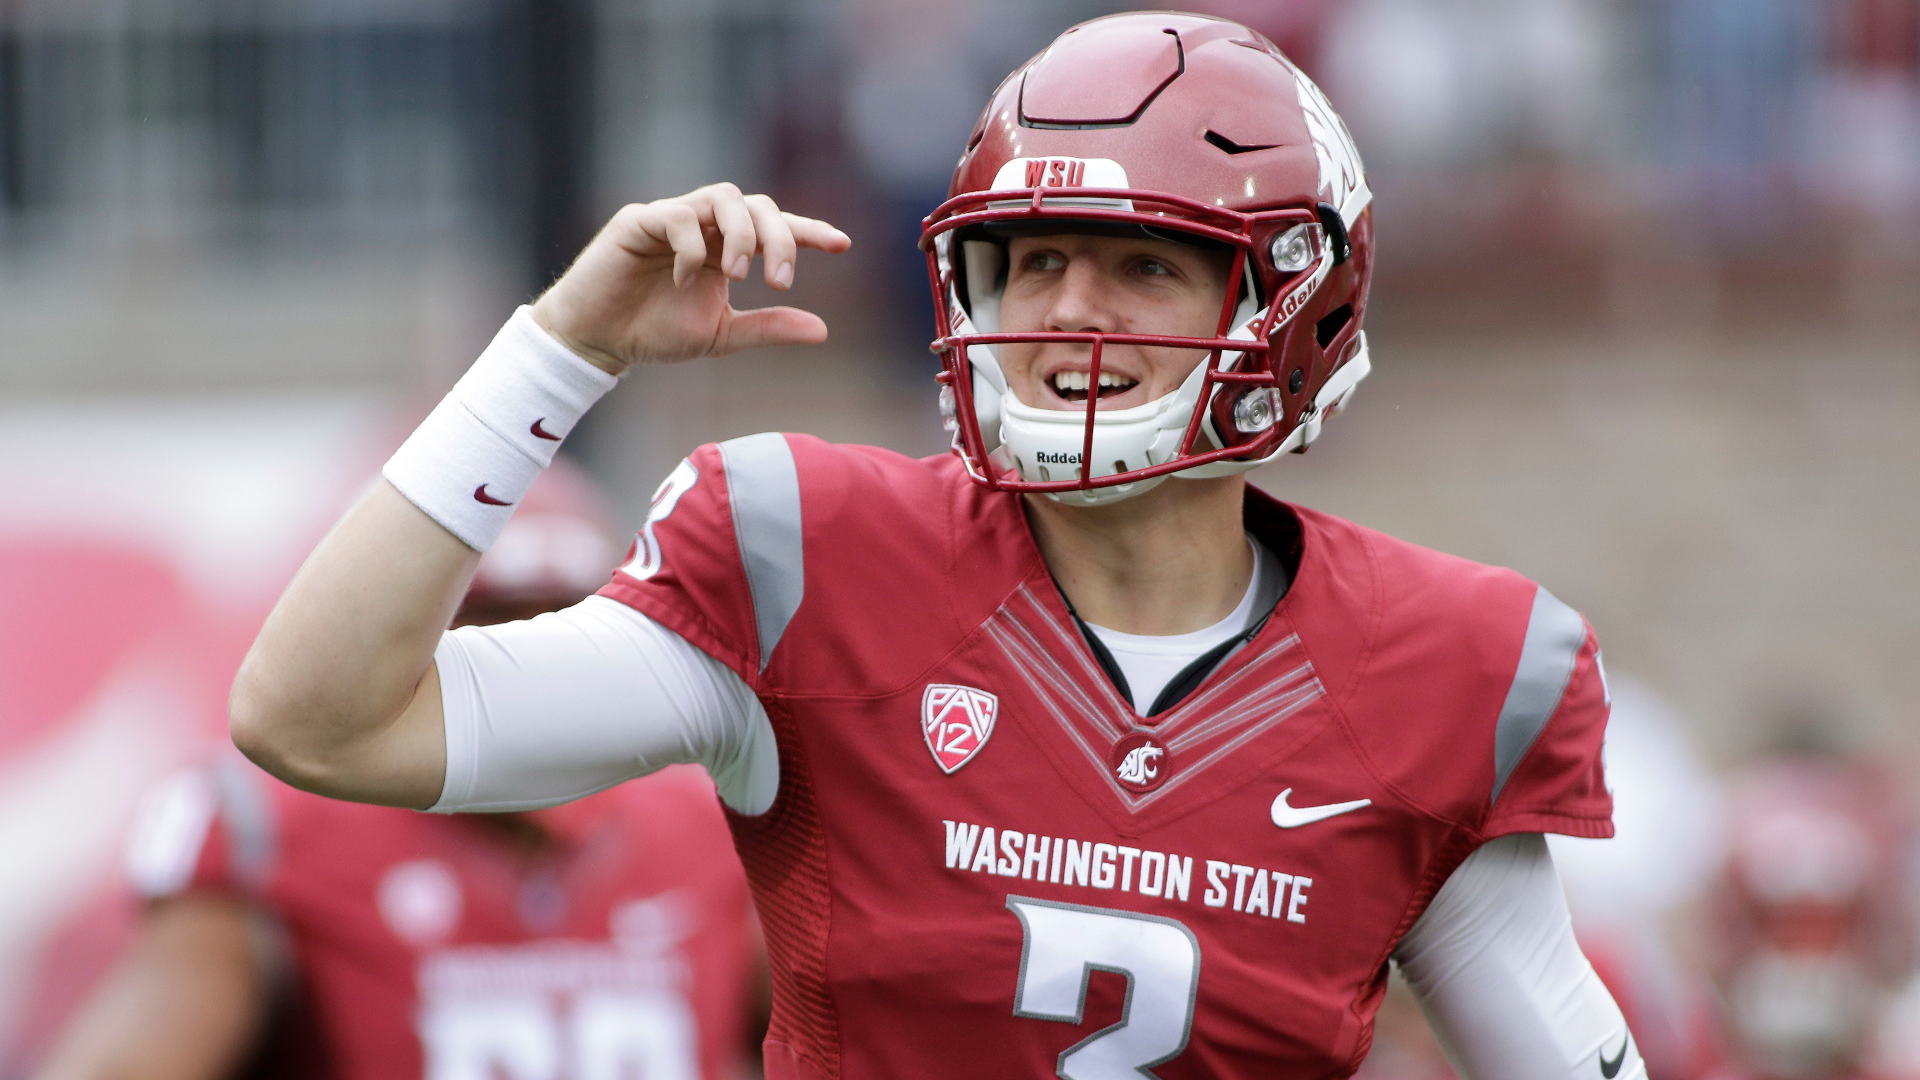 Coroner says Washington State quarterback Tyler Hilinski committed suicide - The Washington Post